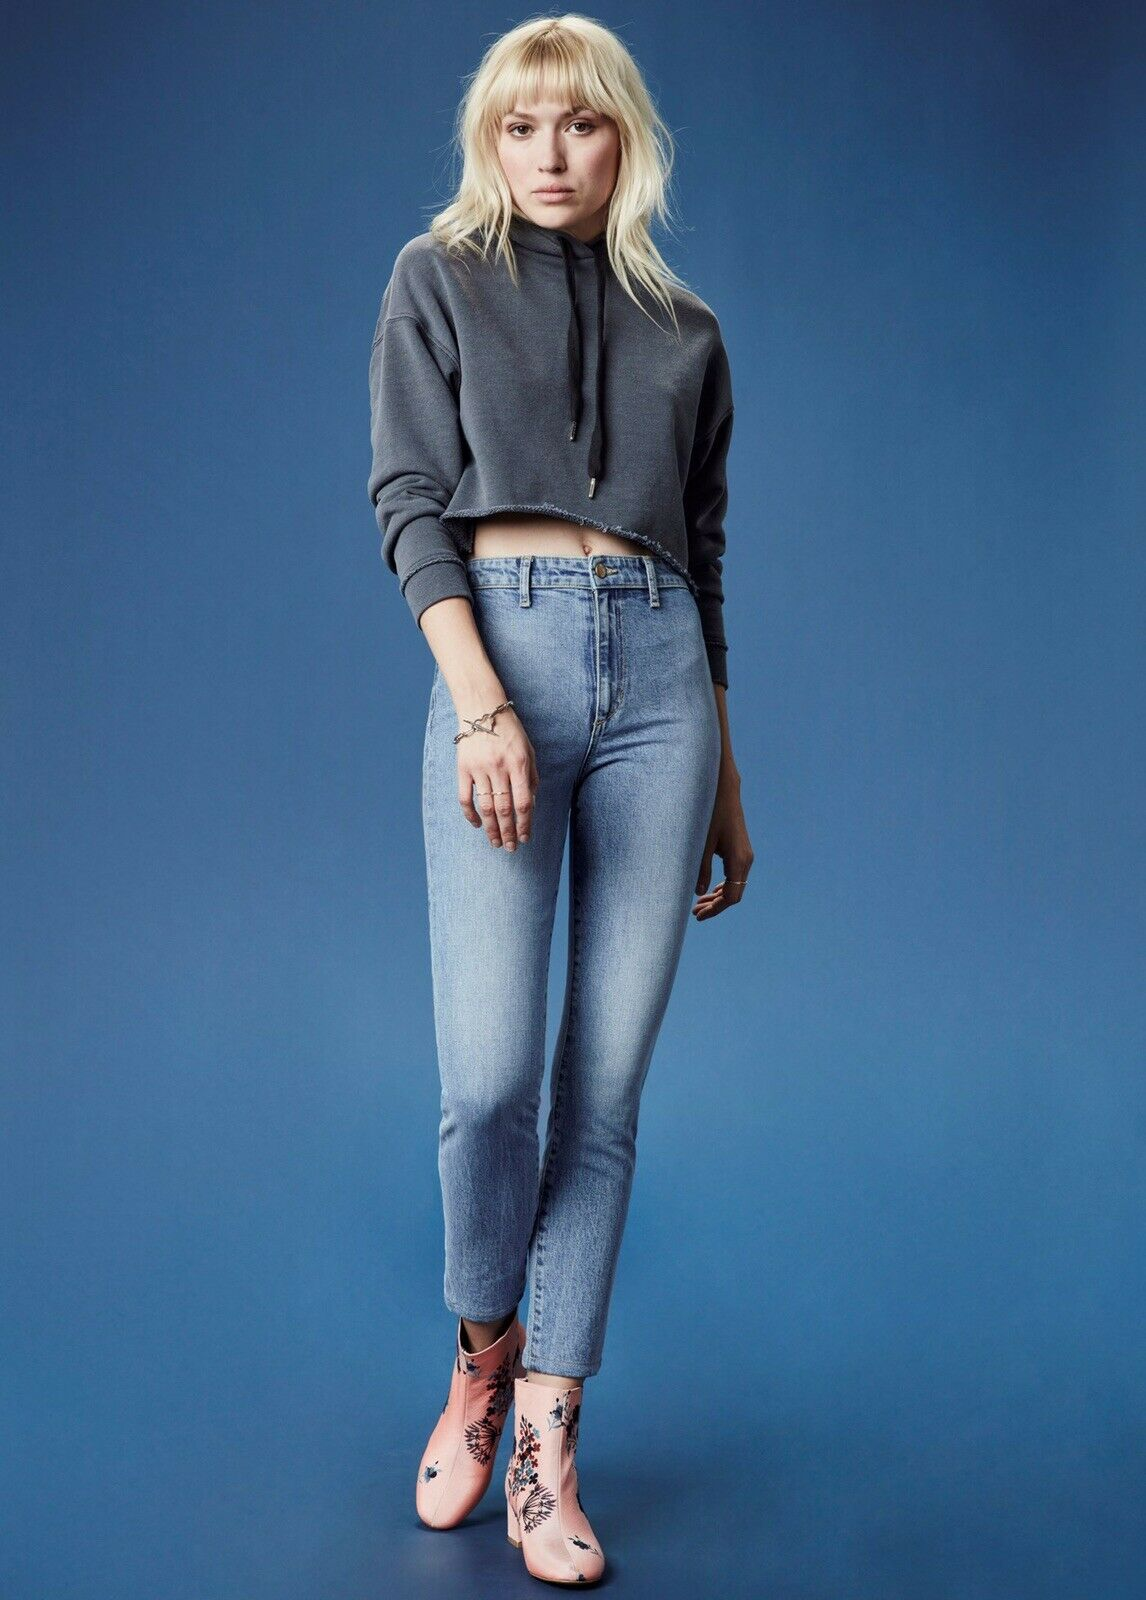 Joe's Jeans X Taylor Hill 'The Charlie' High-Rise Skinny Ankle Jeans - Size 31